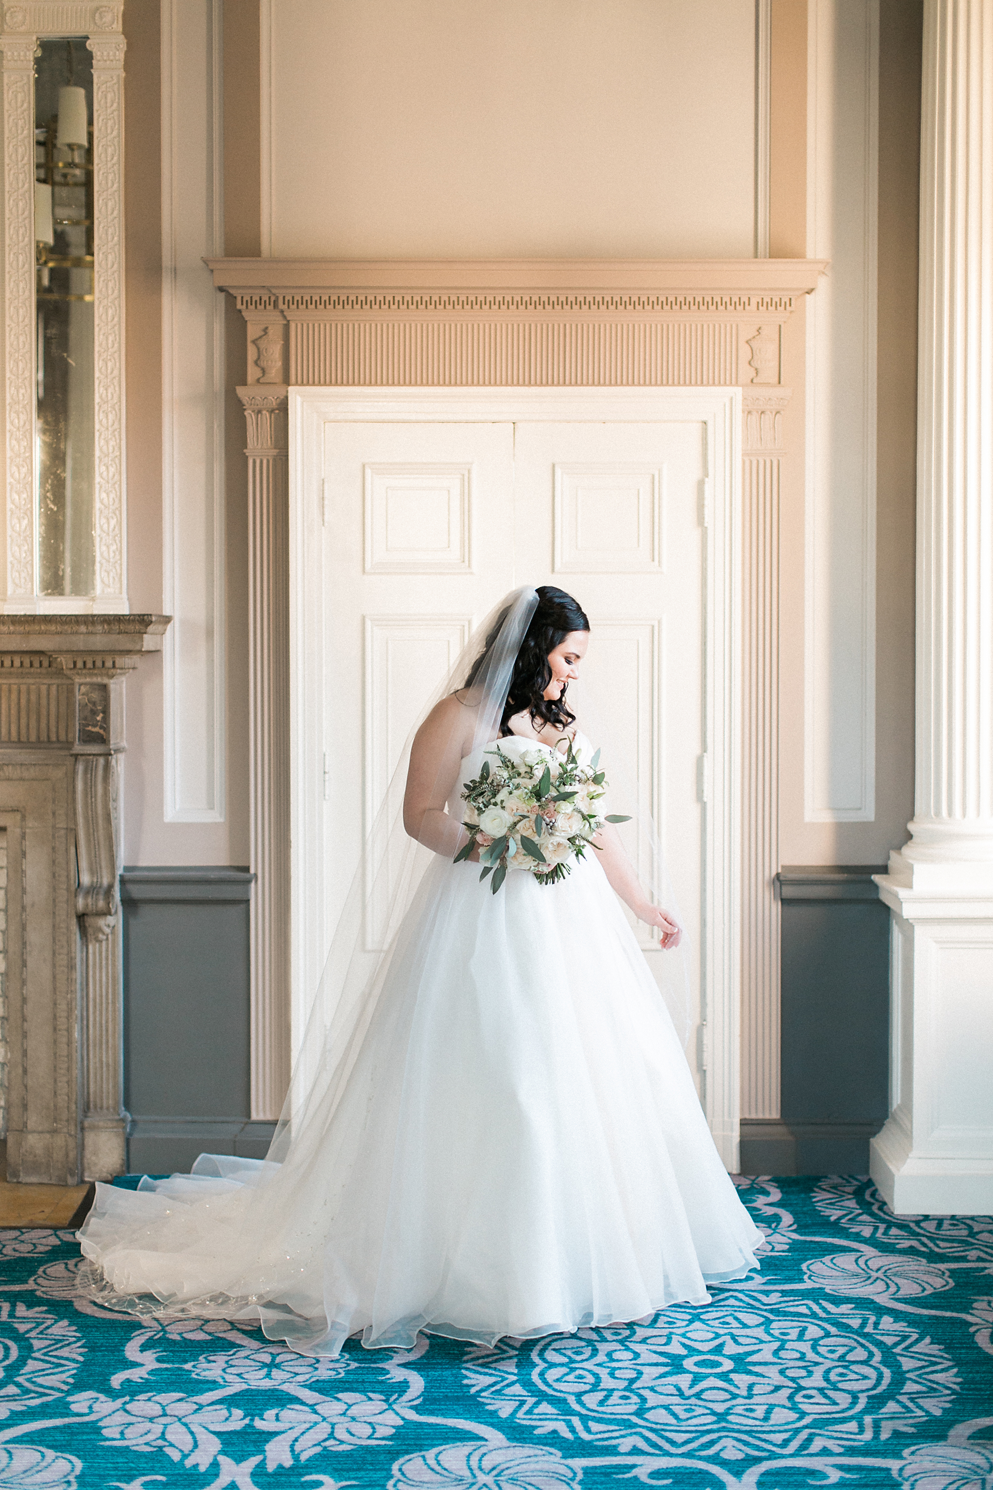 Bridalbliss.com | Portland Wedding Planner | Oregon Event Design | Sweetlife Photography